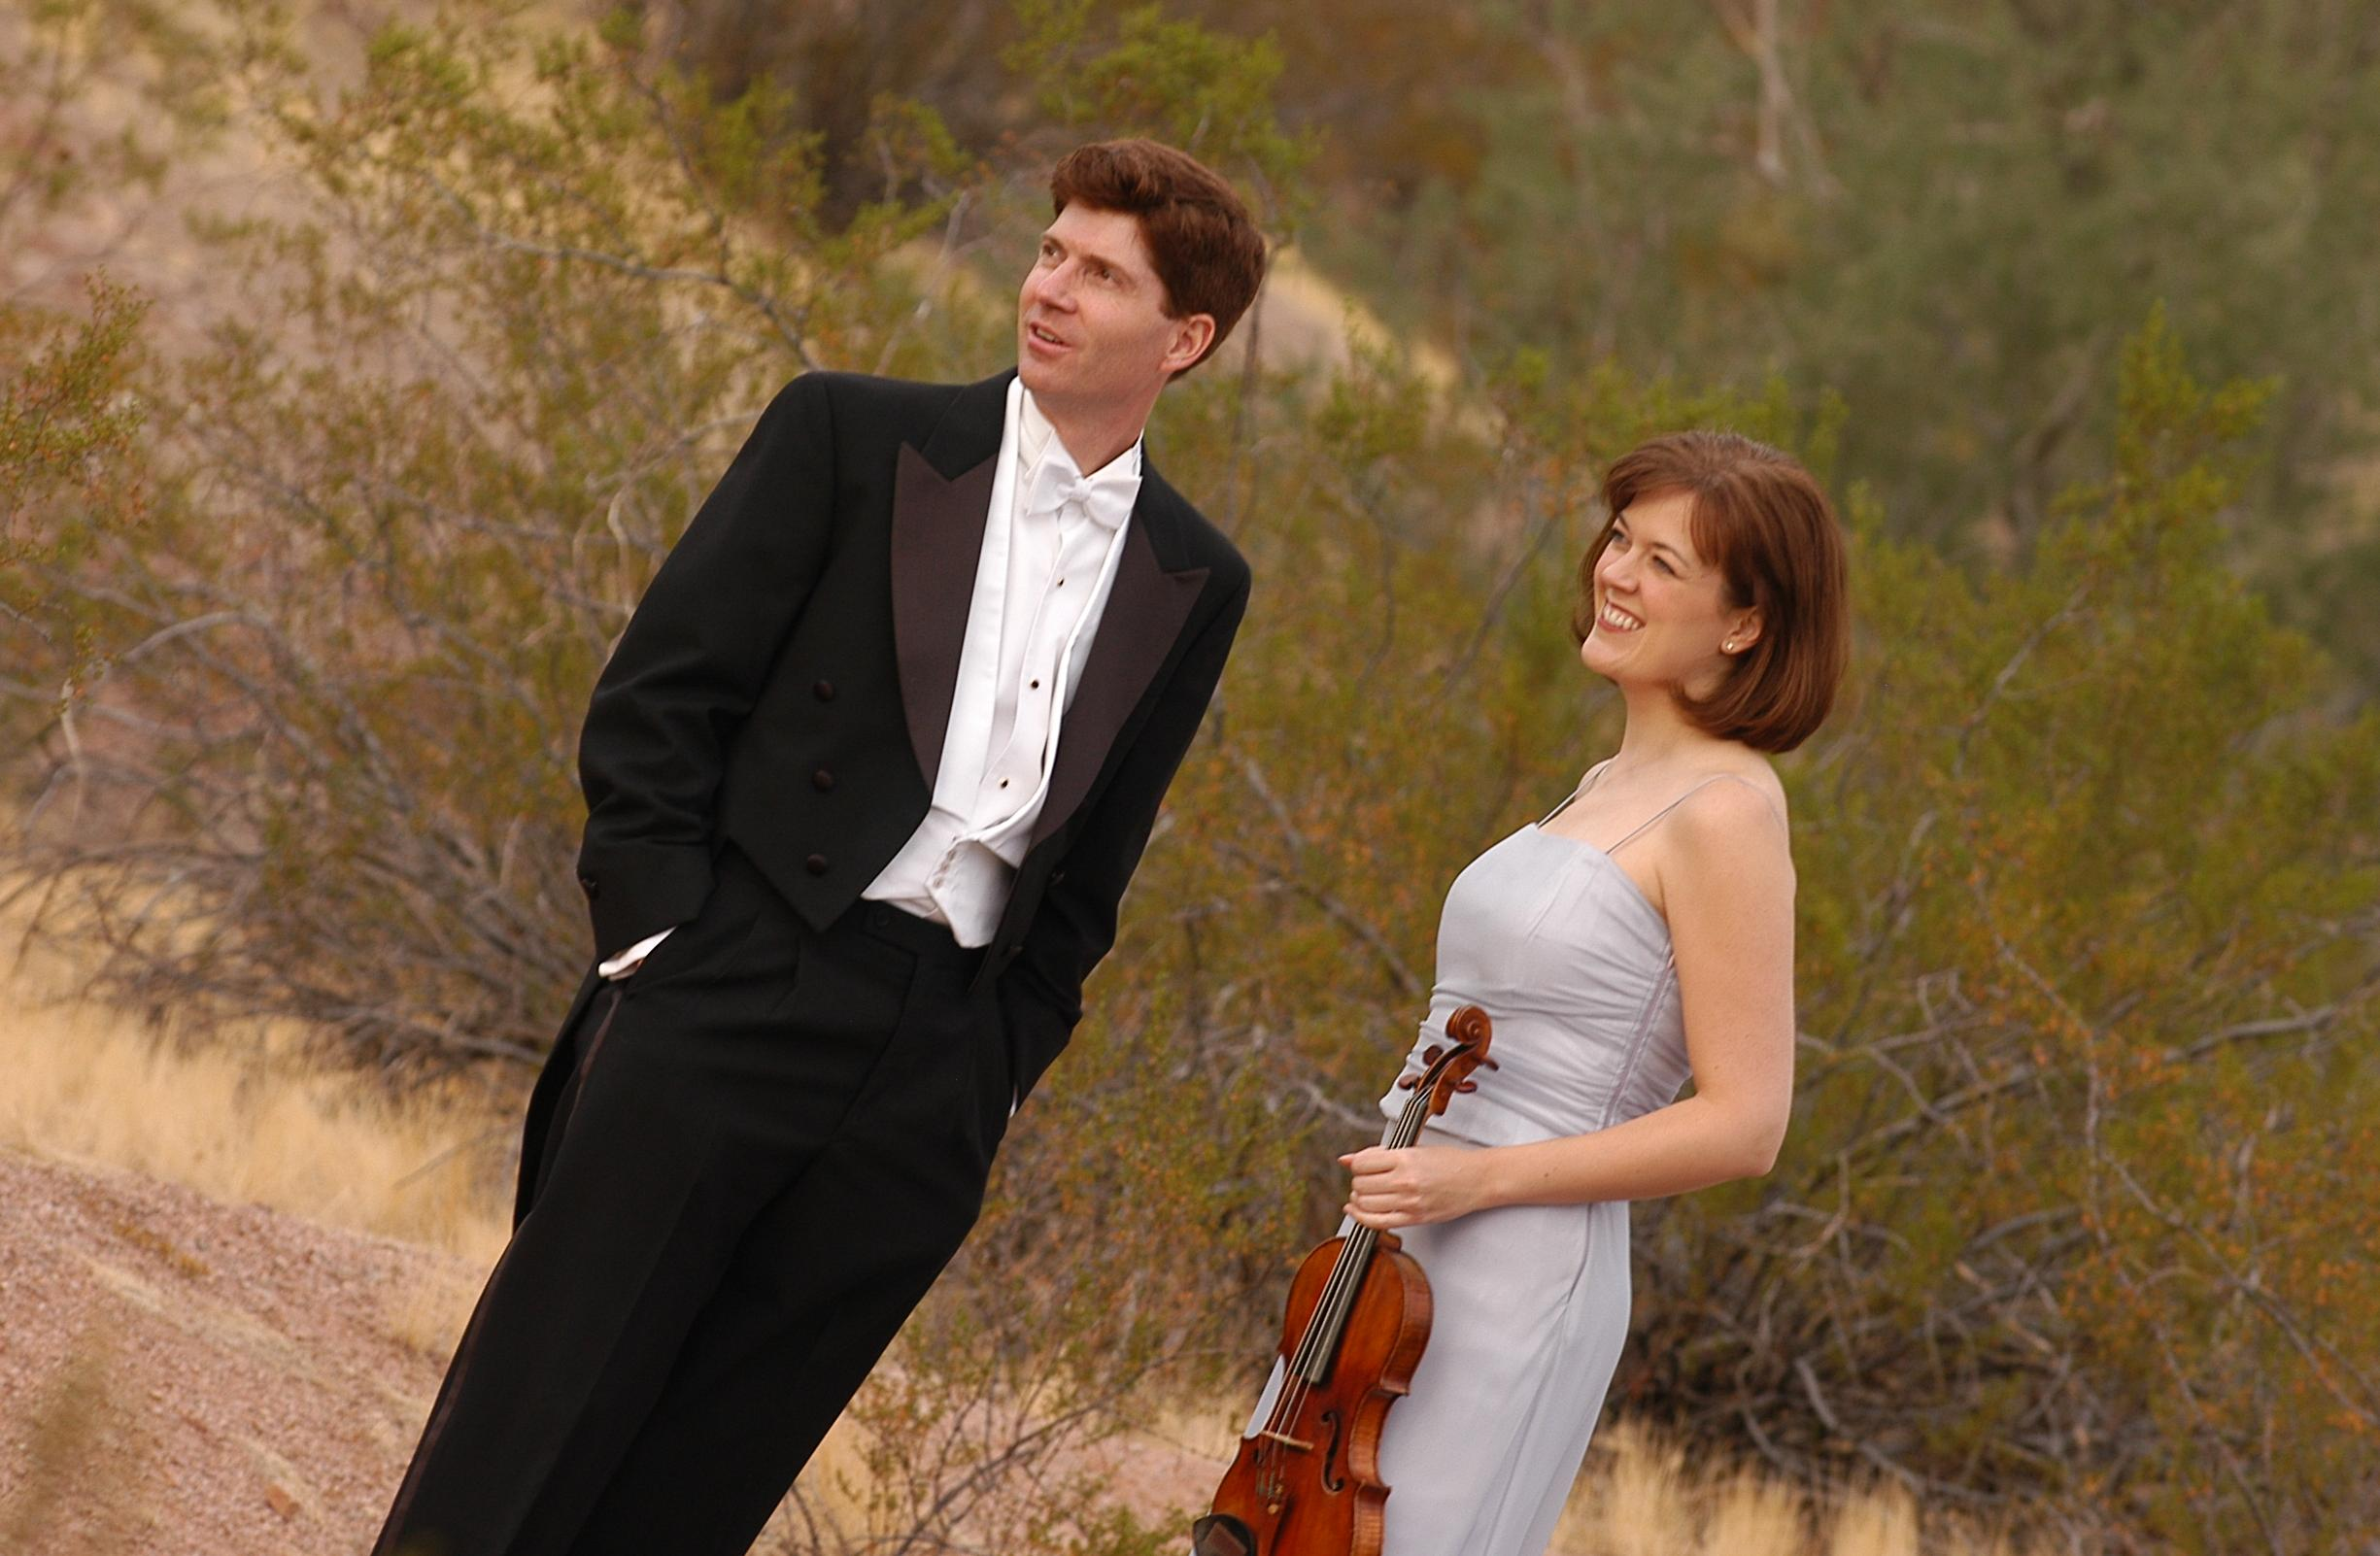 Katherine McLin and Andrew Campbell pose in the desert; Campbell is in a tuxedo and McLin holds a violin in a sparkly gown